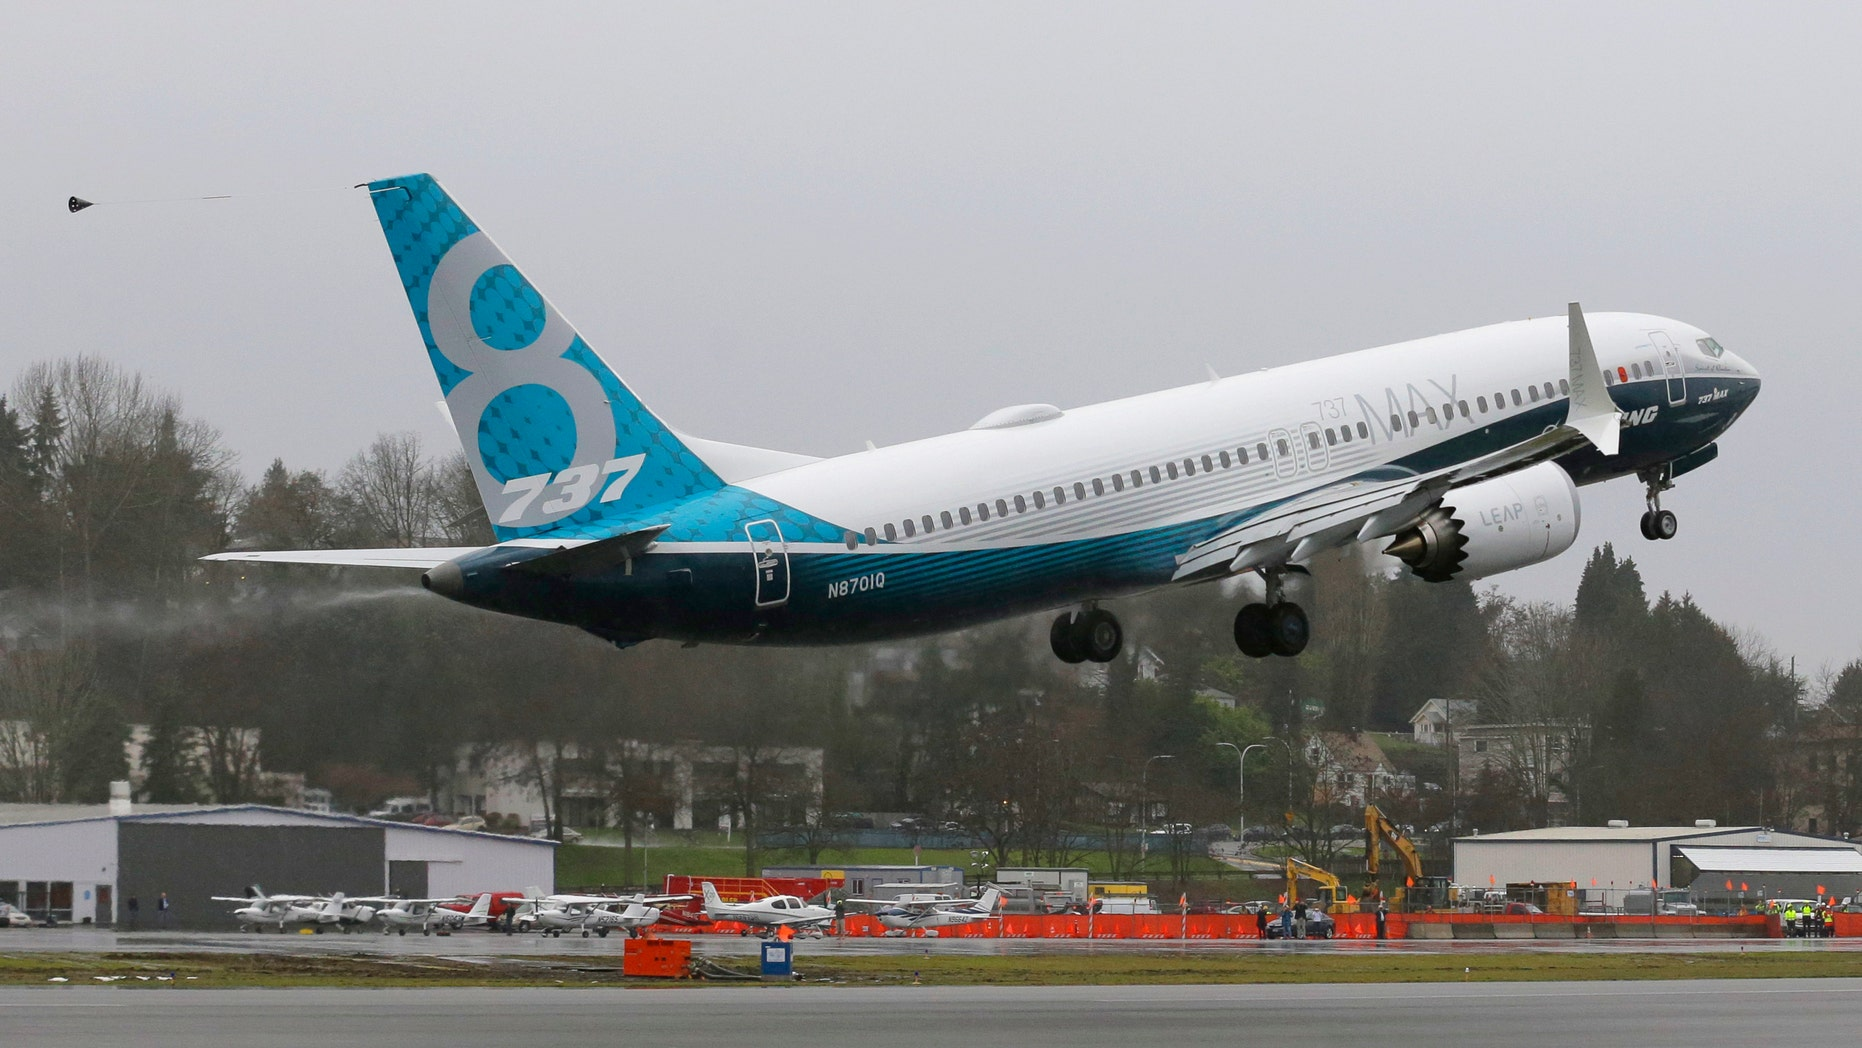 A Boeing 737 MAX airplane takes off on its first test flight, Friday, Jan. 29, 2016, in Renton, Wash. (AP Photo/Ted S. Warren)